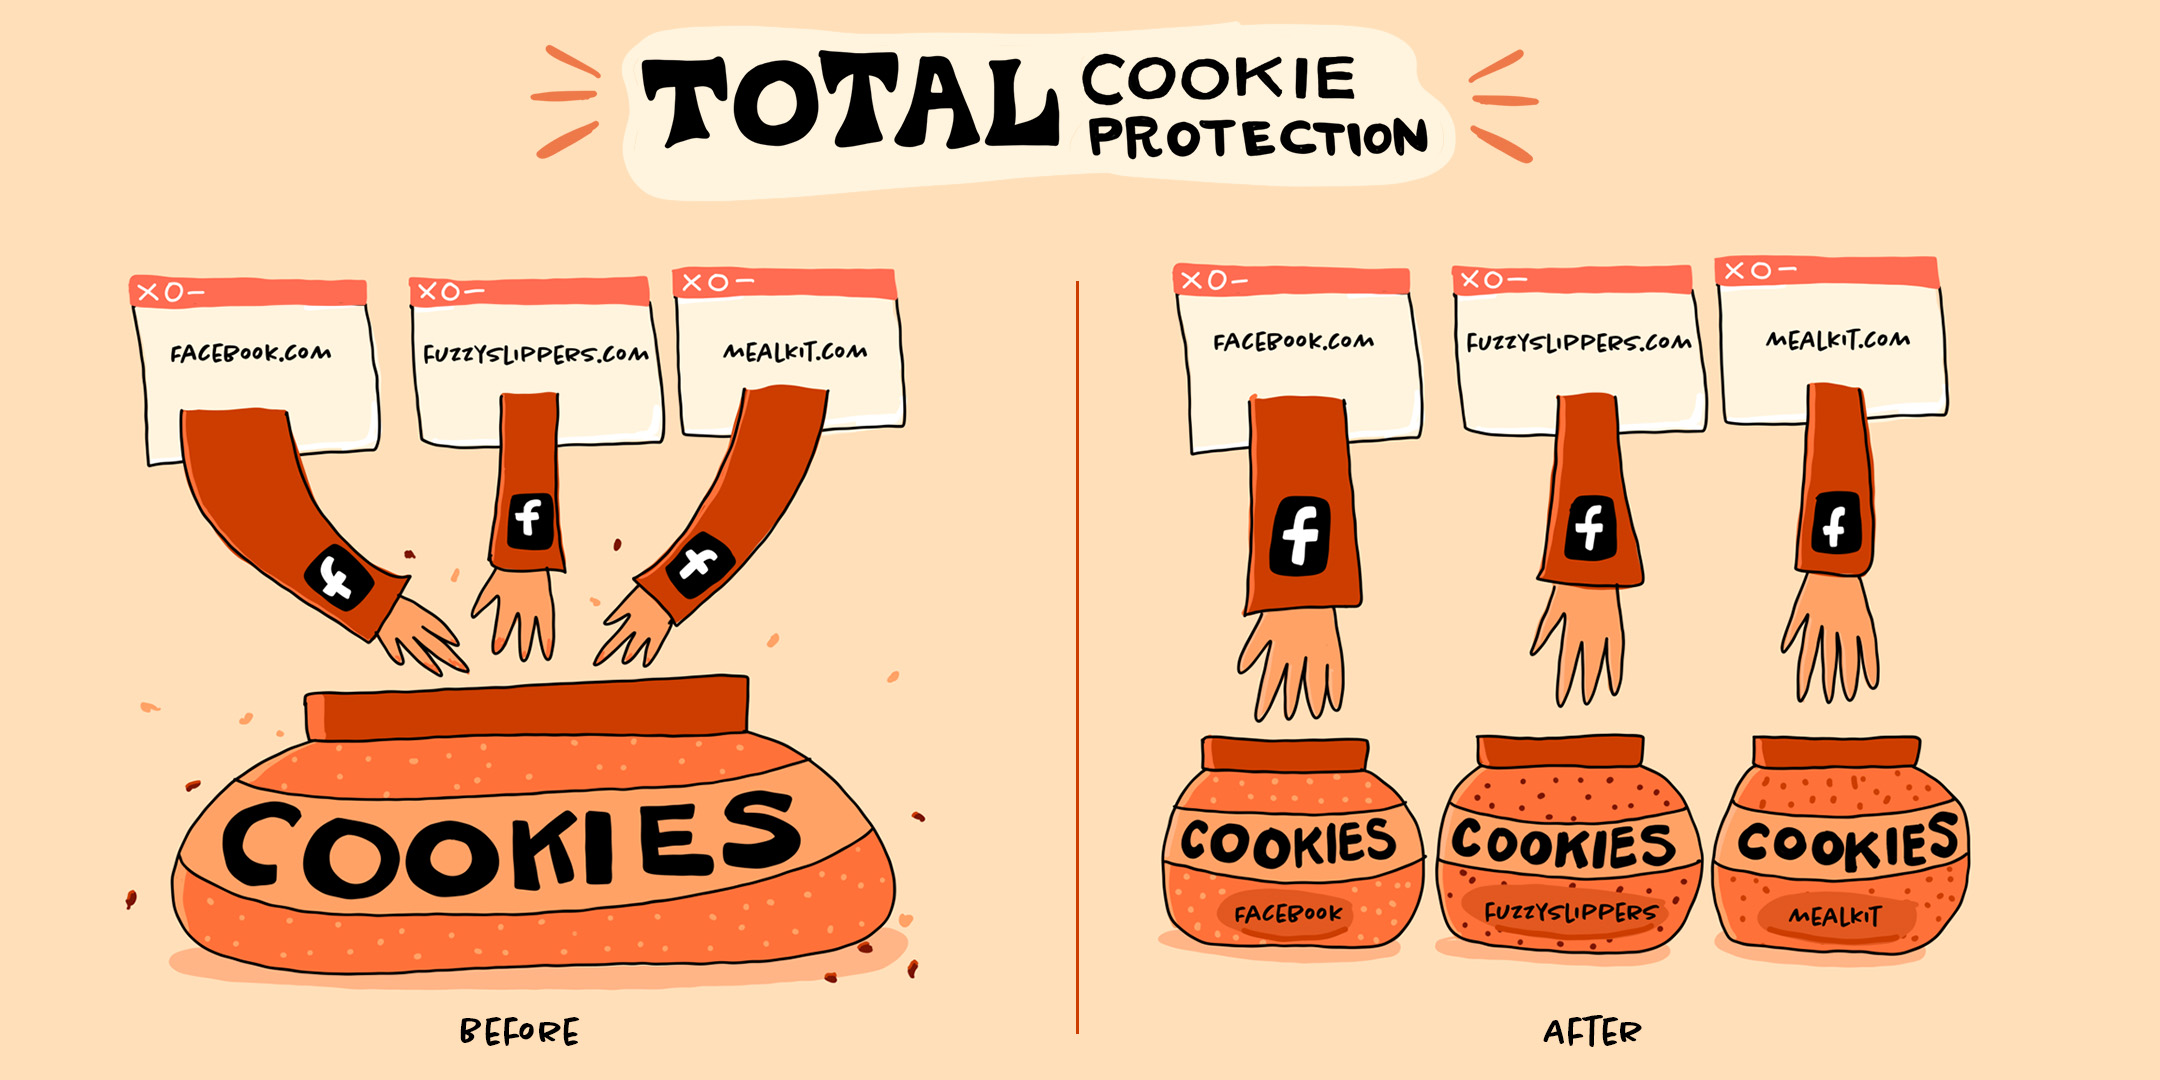 Firefox 86 introduces total cookie protection 2